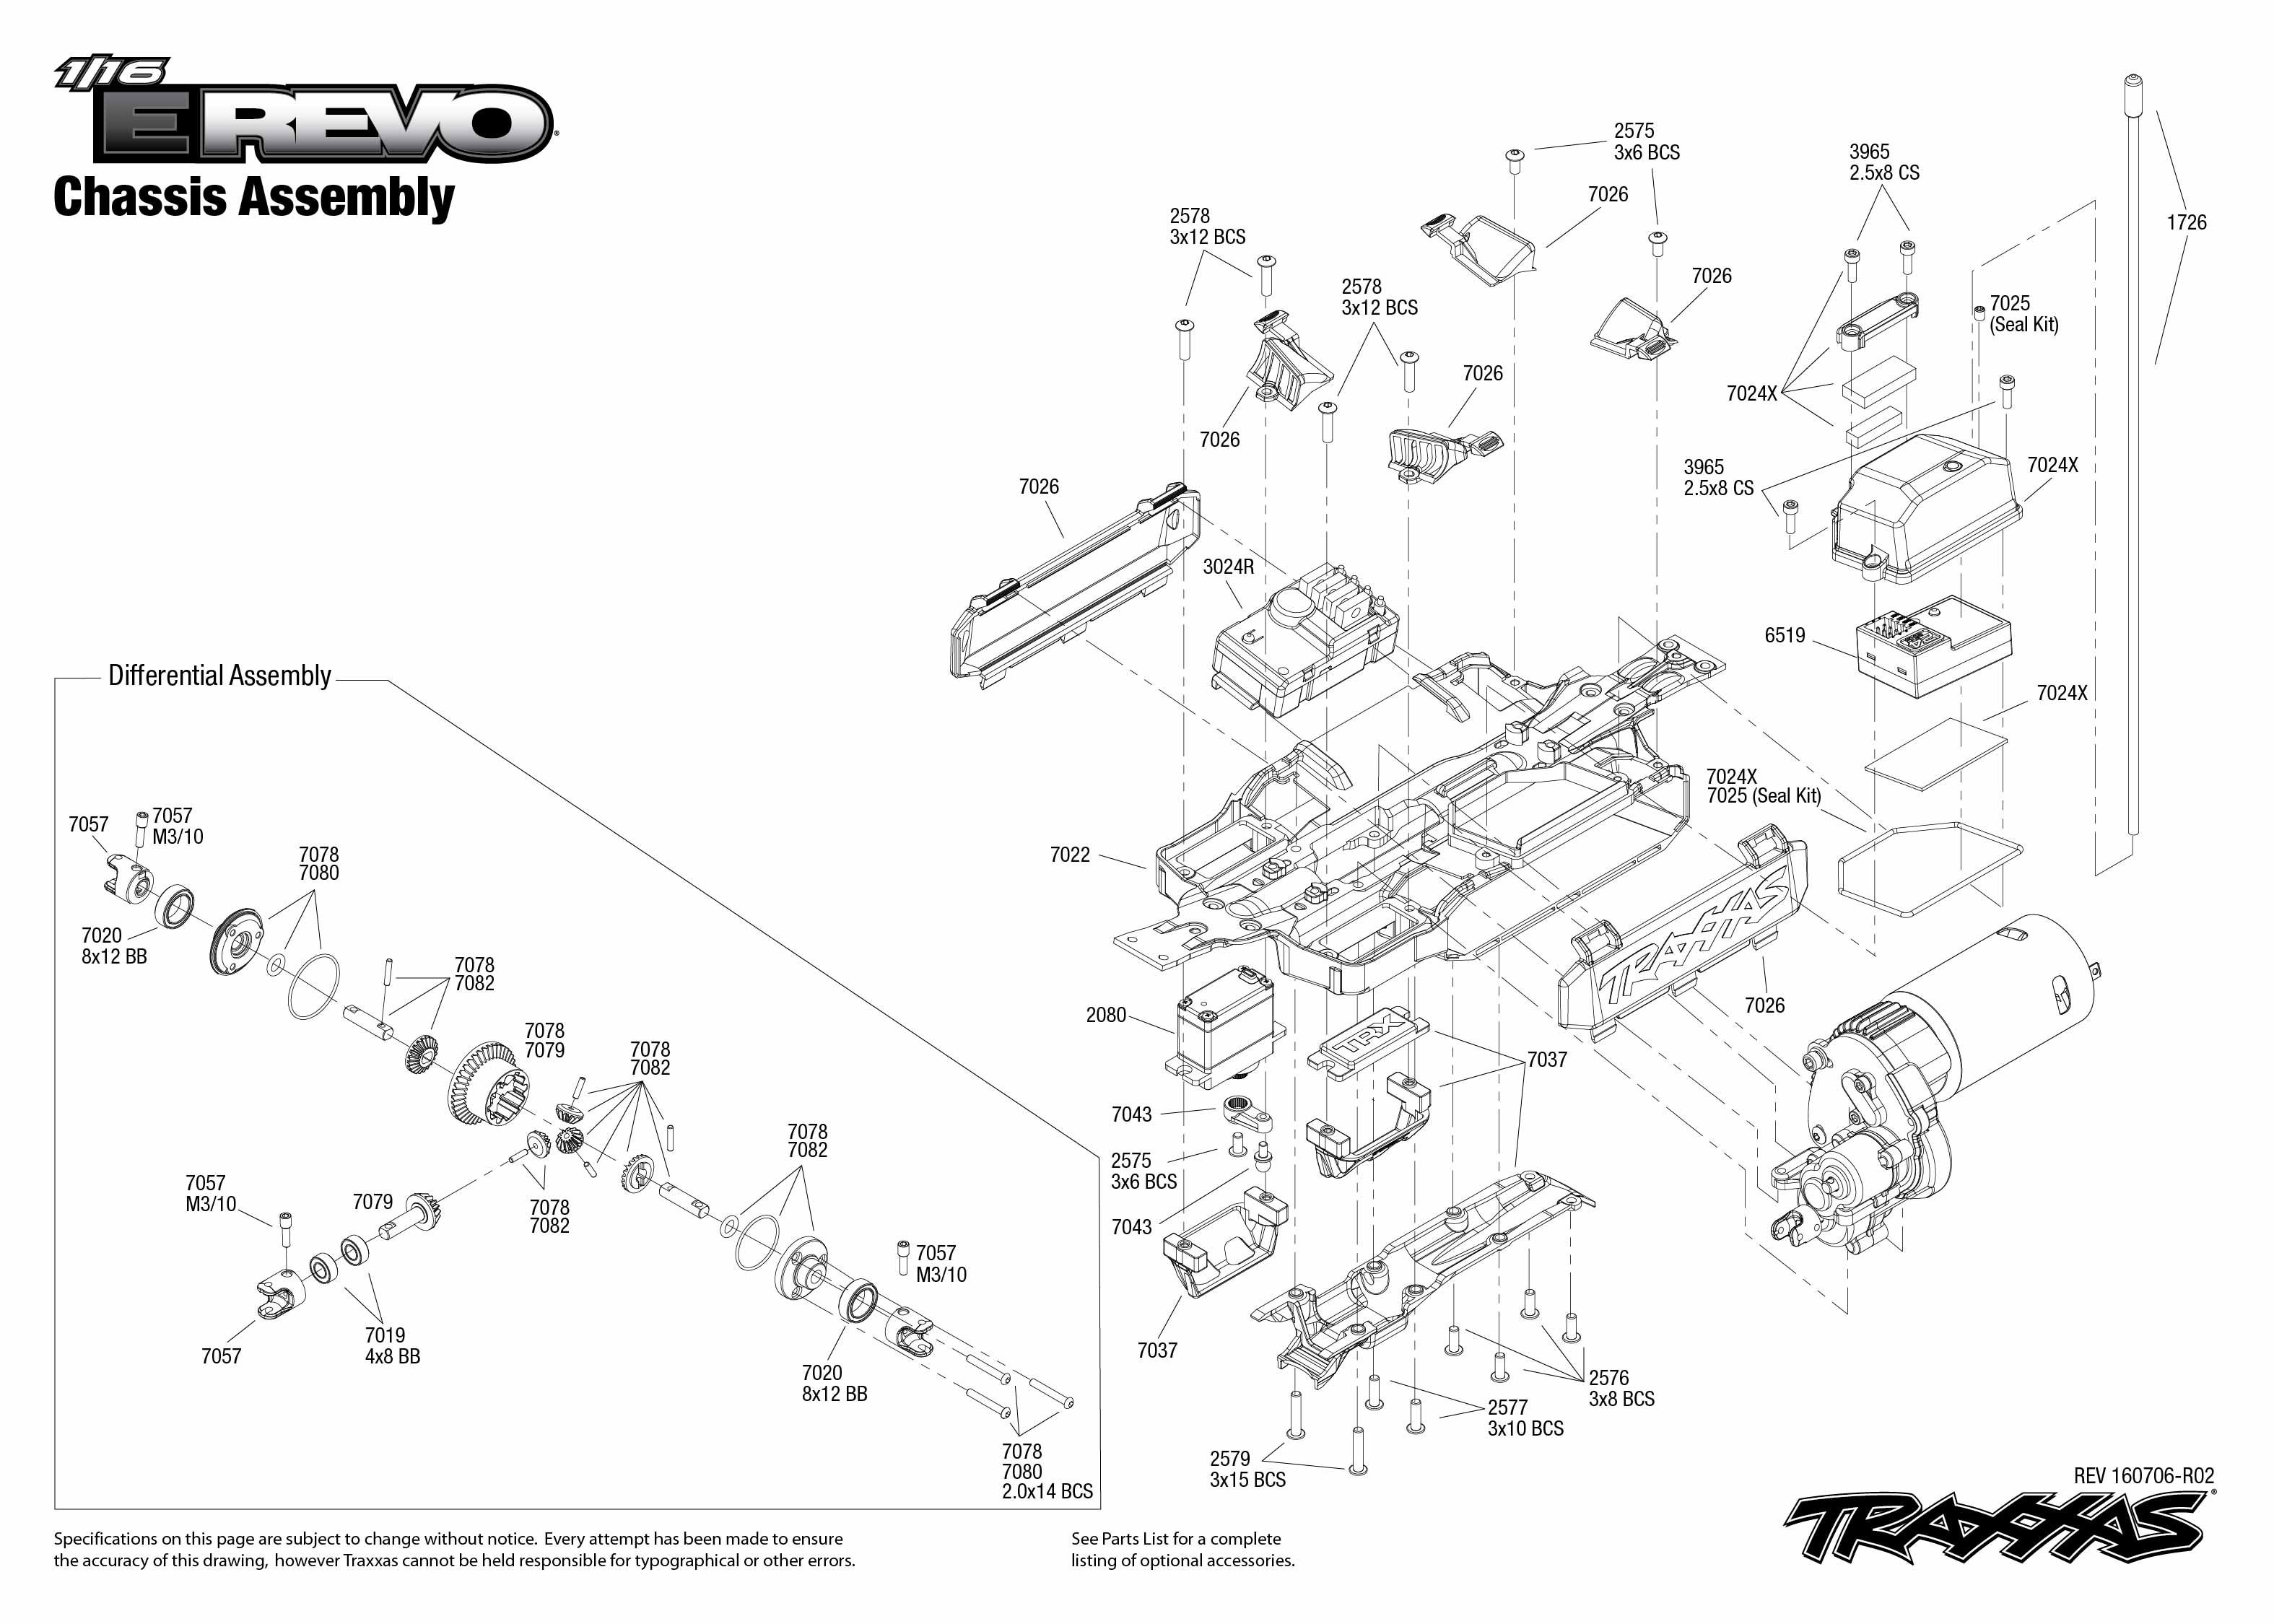 116 ERevo (710541) Chassis Assembly Exploded View